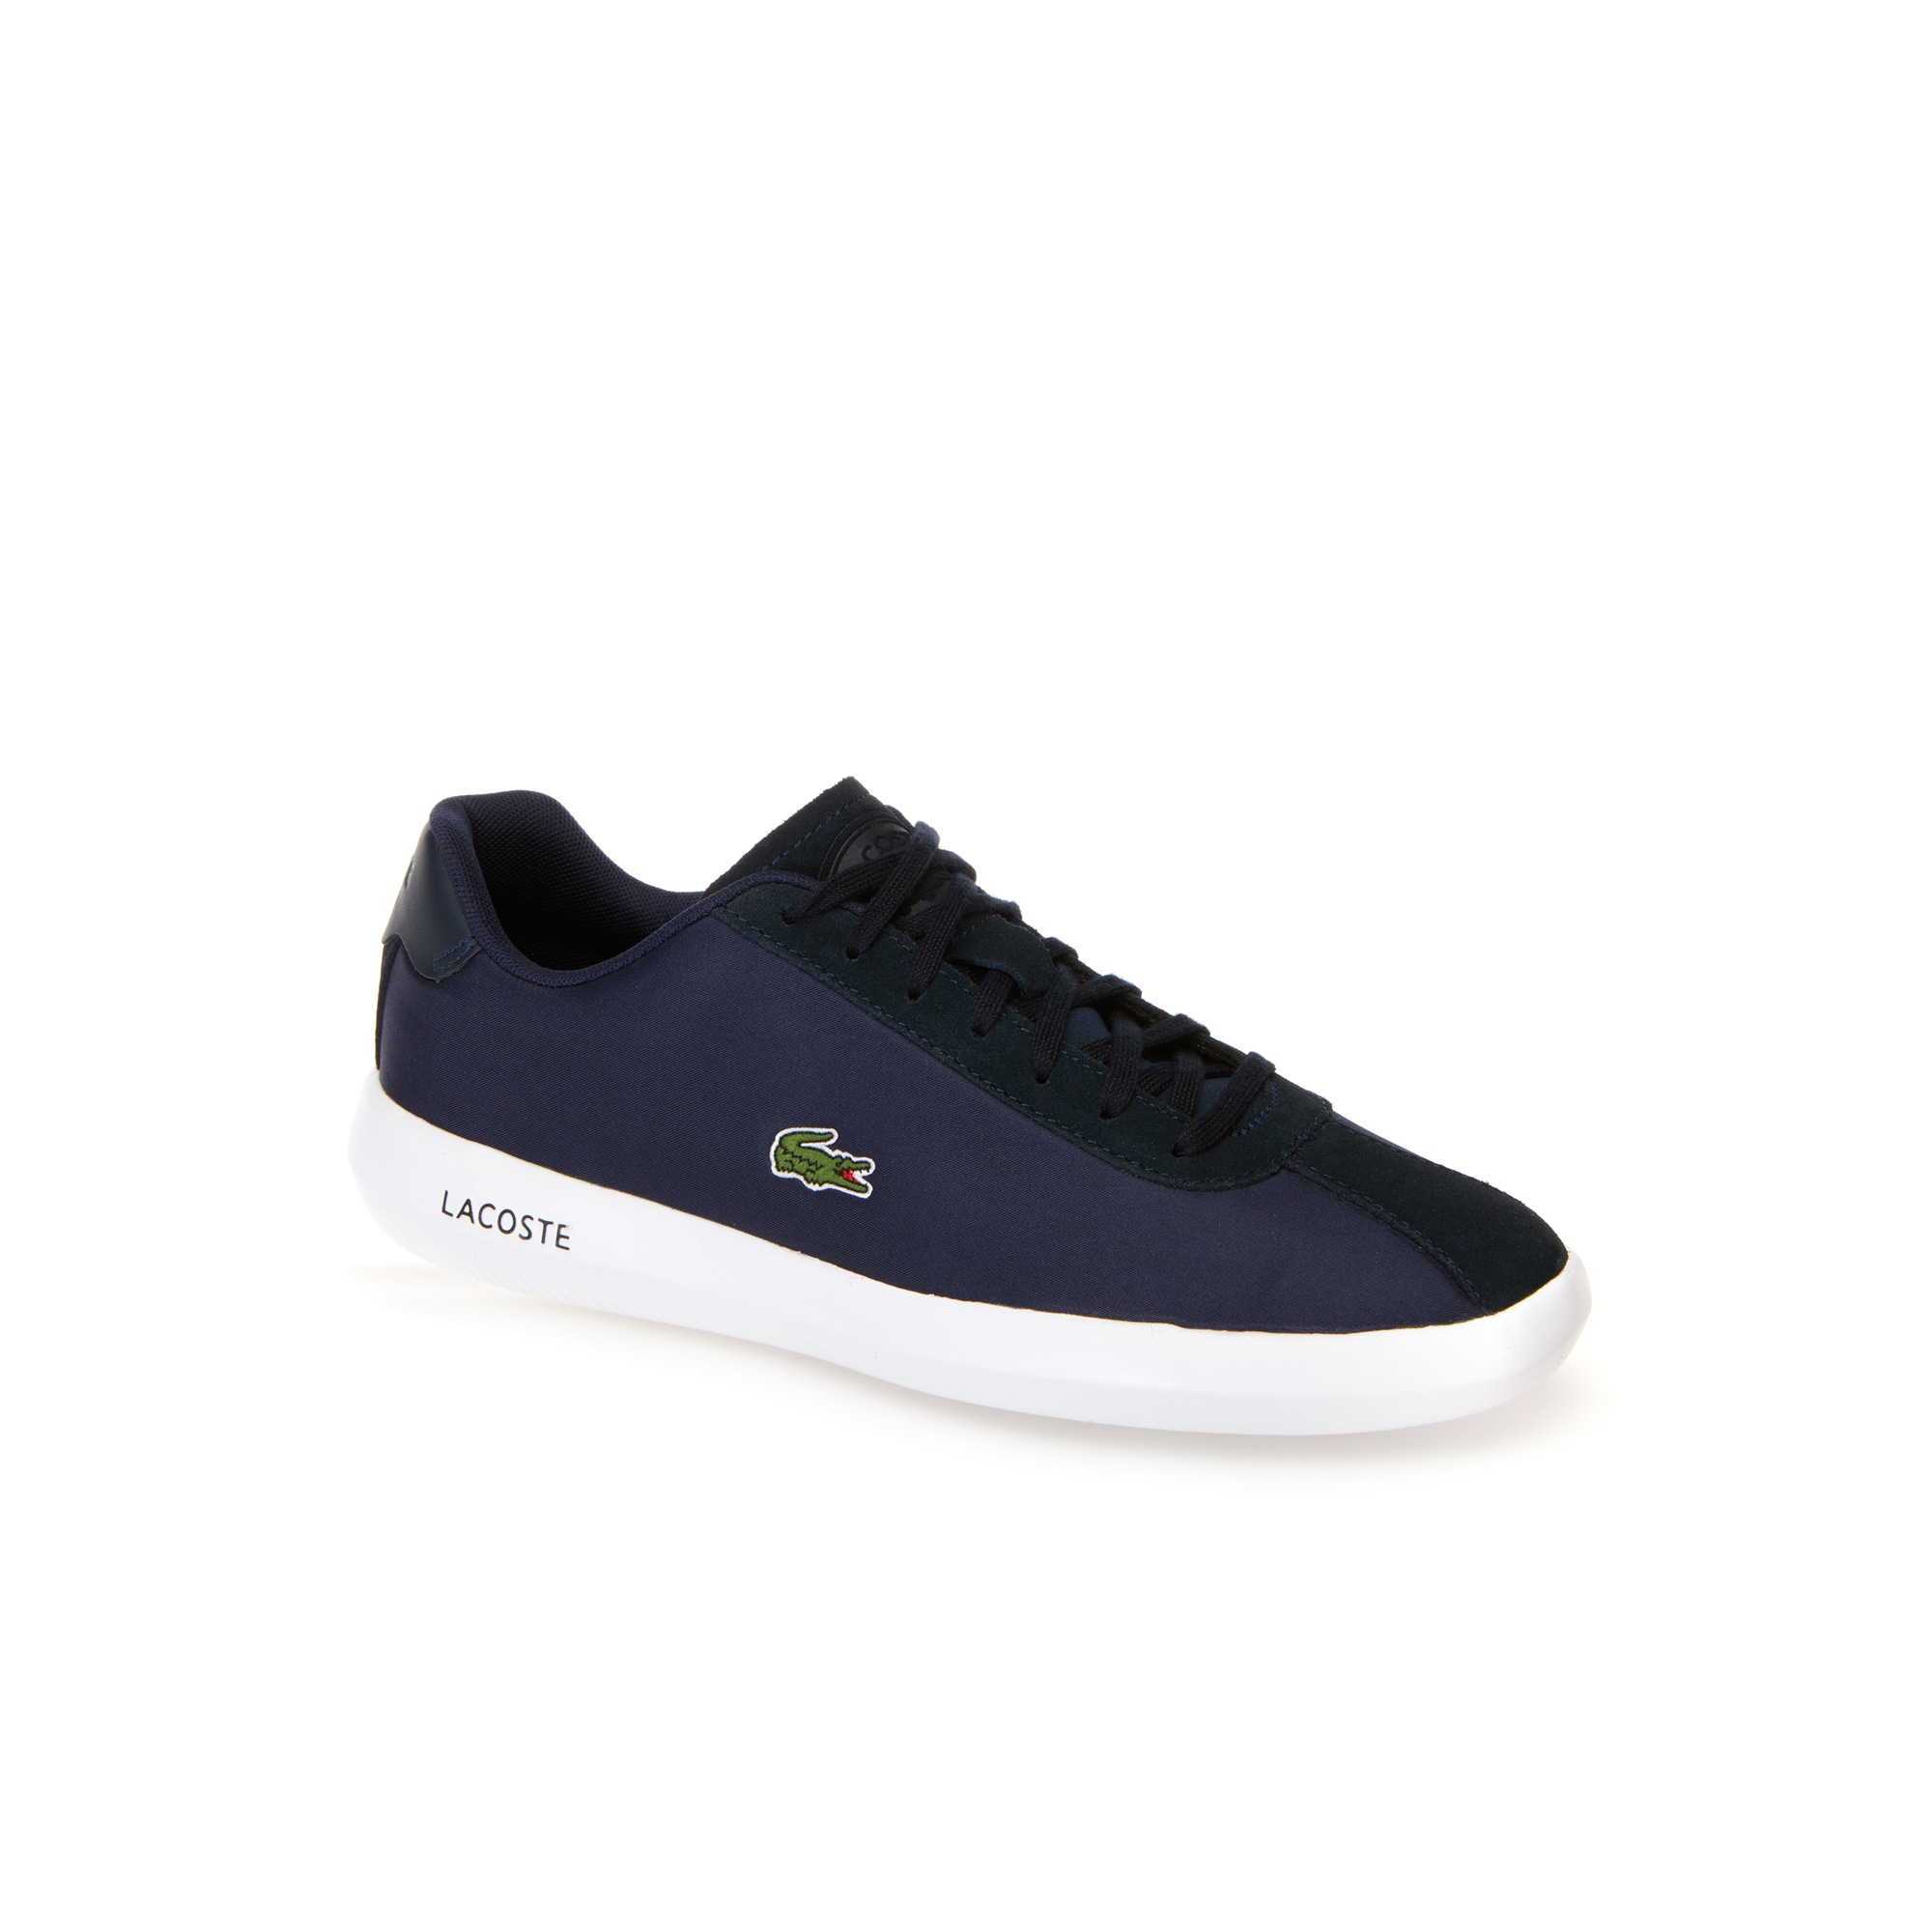 375e3e6c47e75 Men s Avance Nylon and Suede Trainers ...